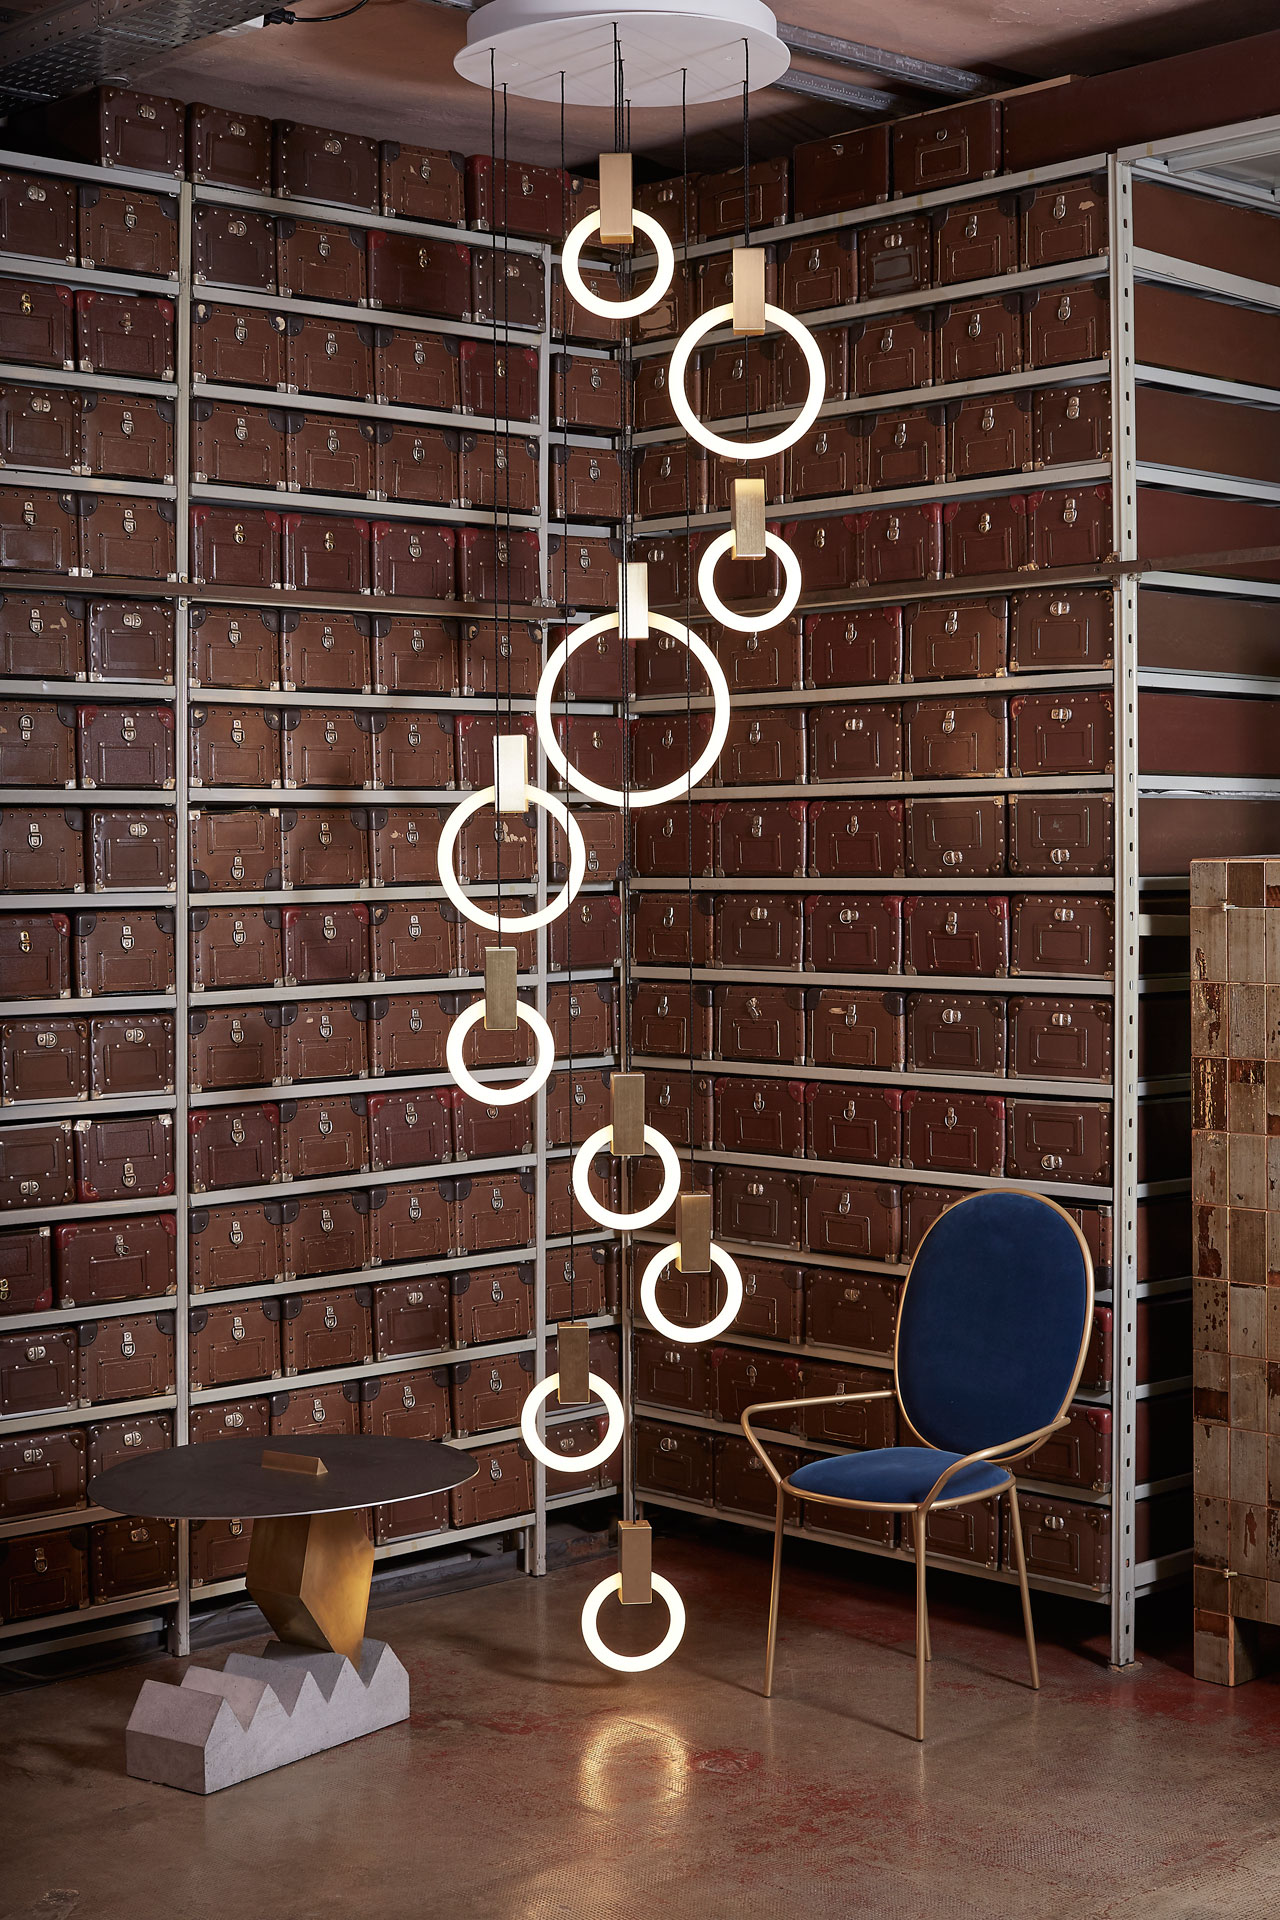 Installation with HALO lights by Canadian designer Matthew McCormick at Spazio Rossana Orlandi.